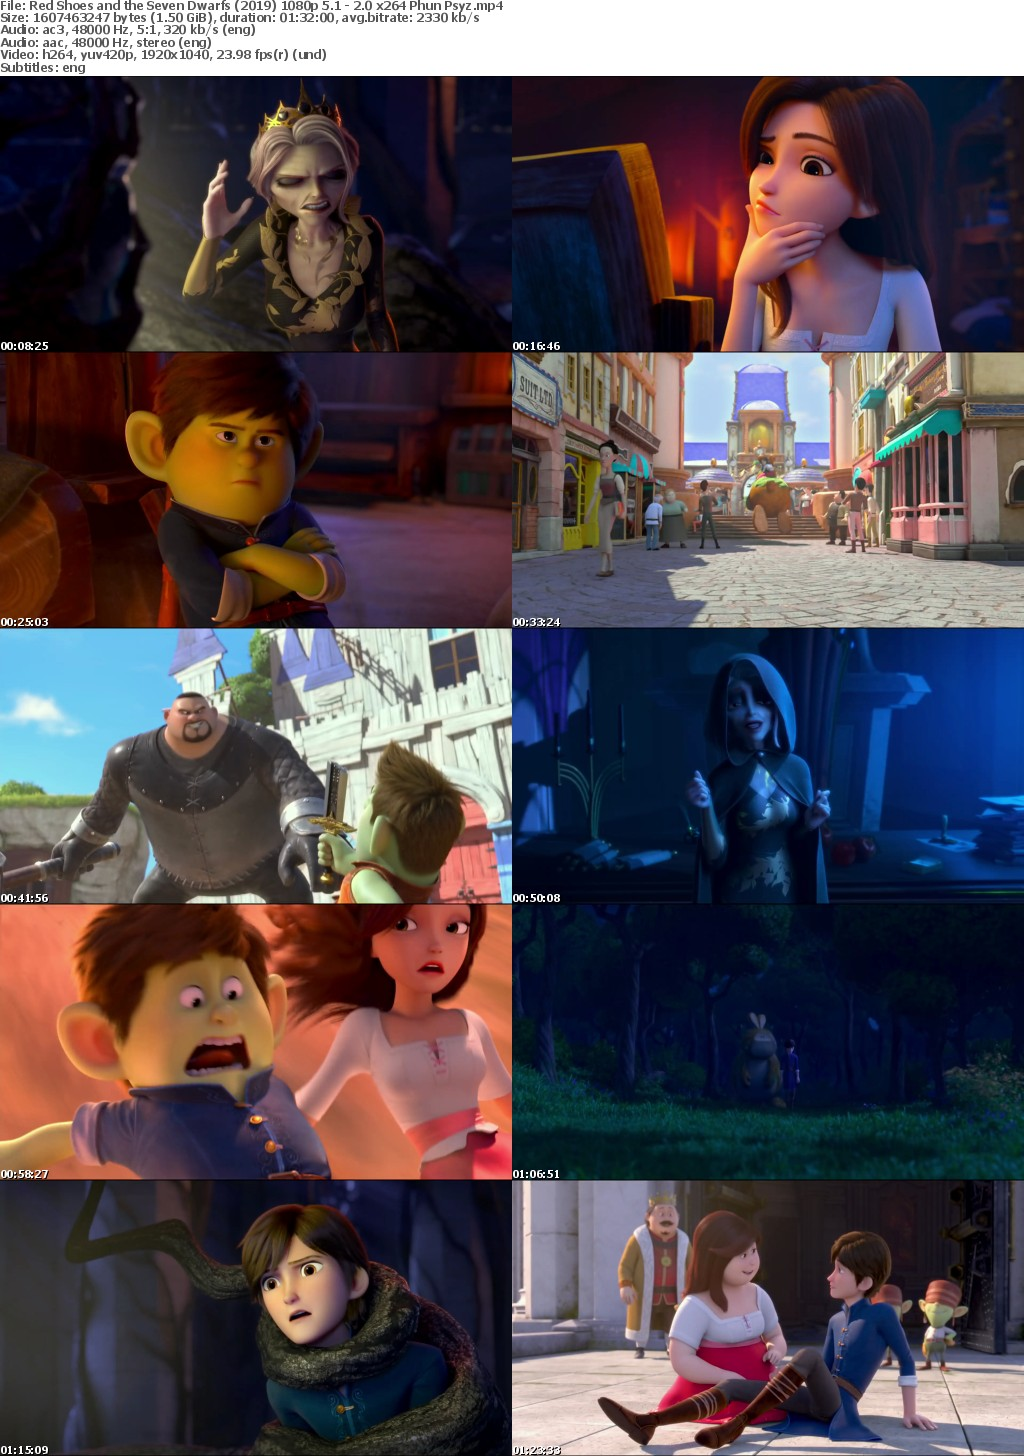 Red Shoes and the Seven Dwarfs (2019) 1080p 5 1 - 2 0 x264 Phun Psyz